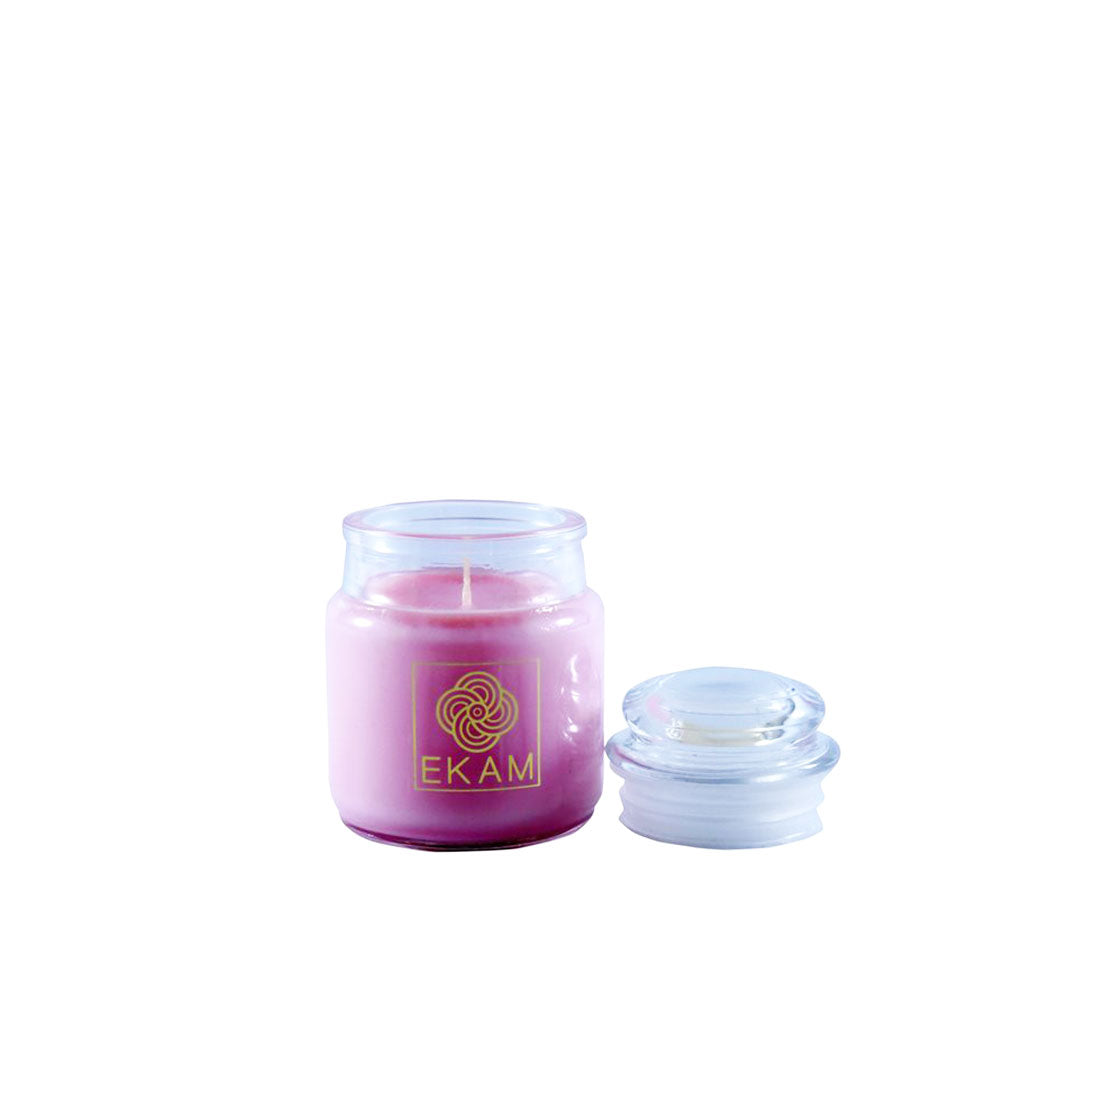 Ekam Strawberry Scented Jar Candle